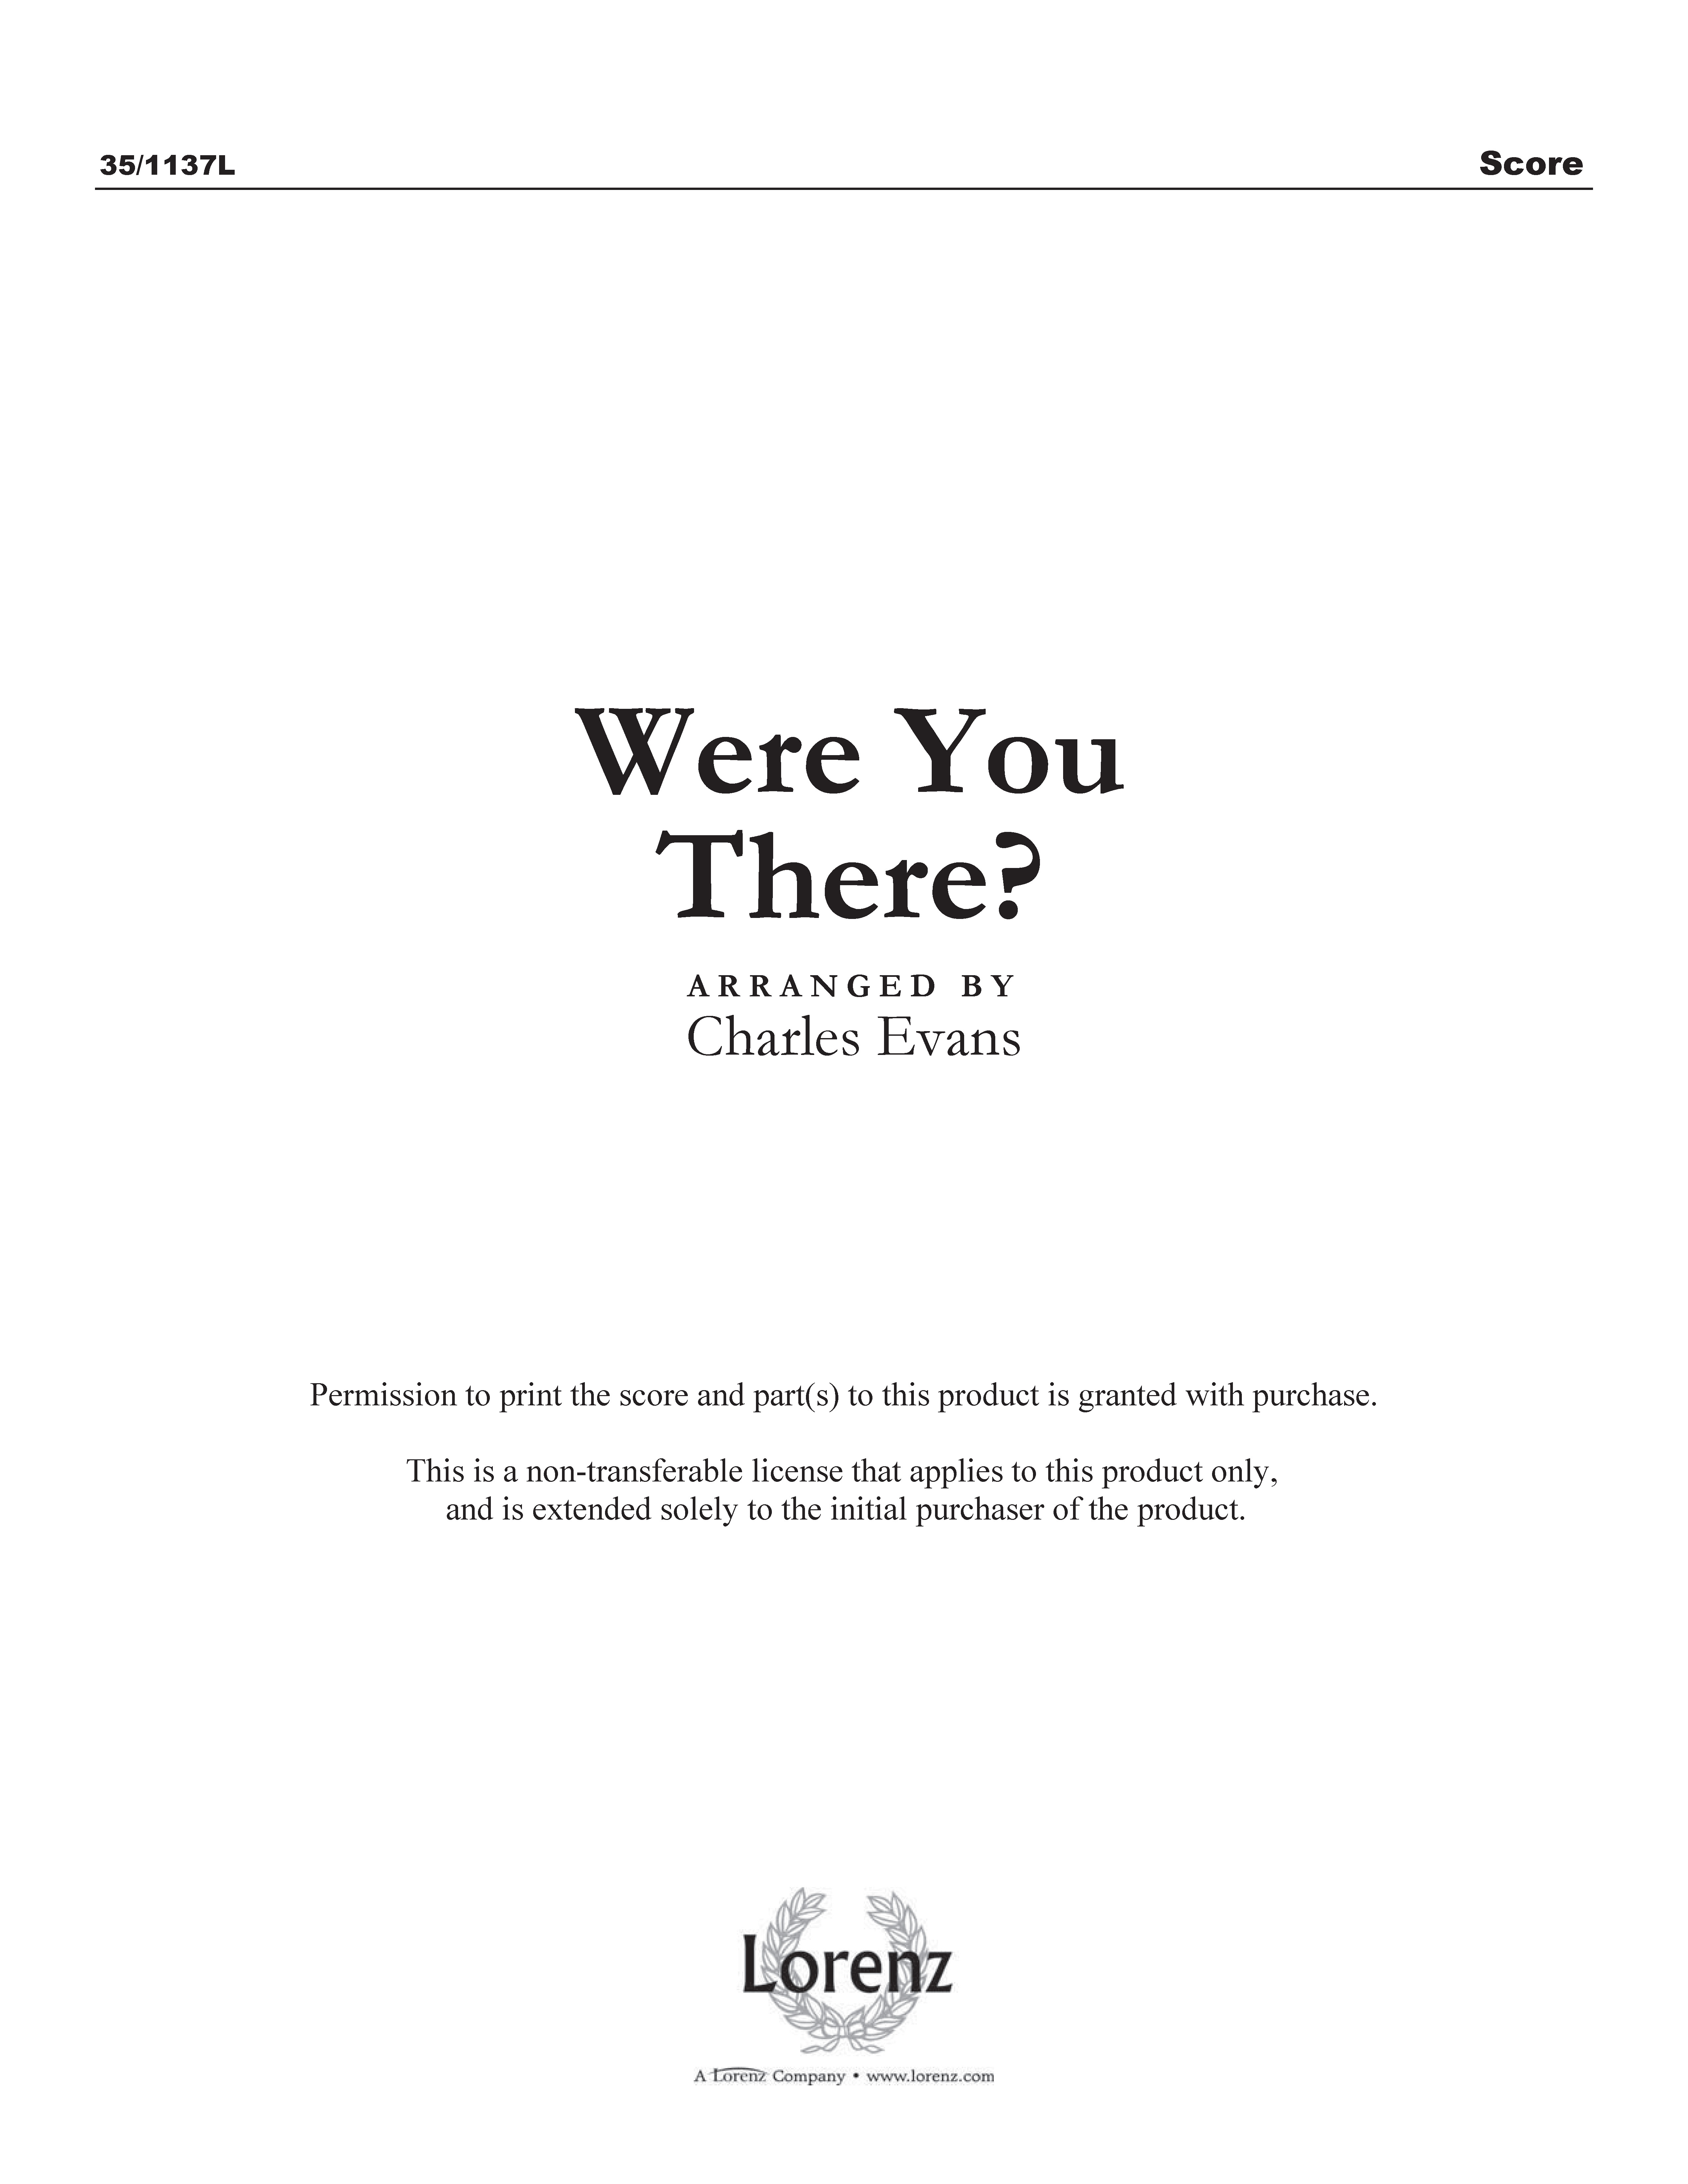 Were You There? (Digital Delivery)